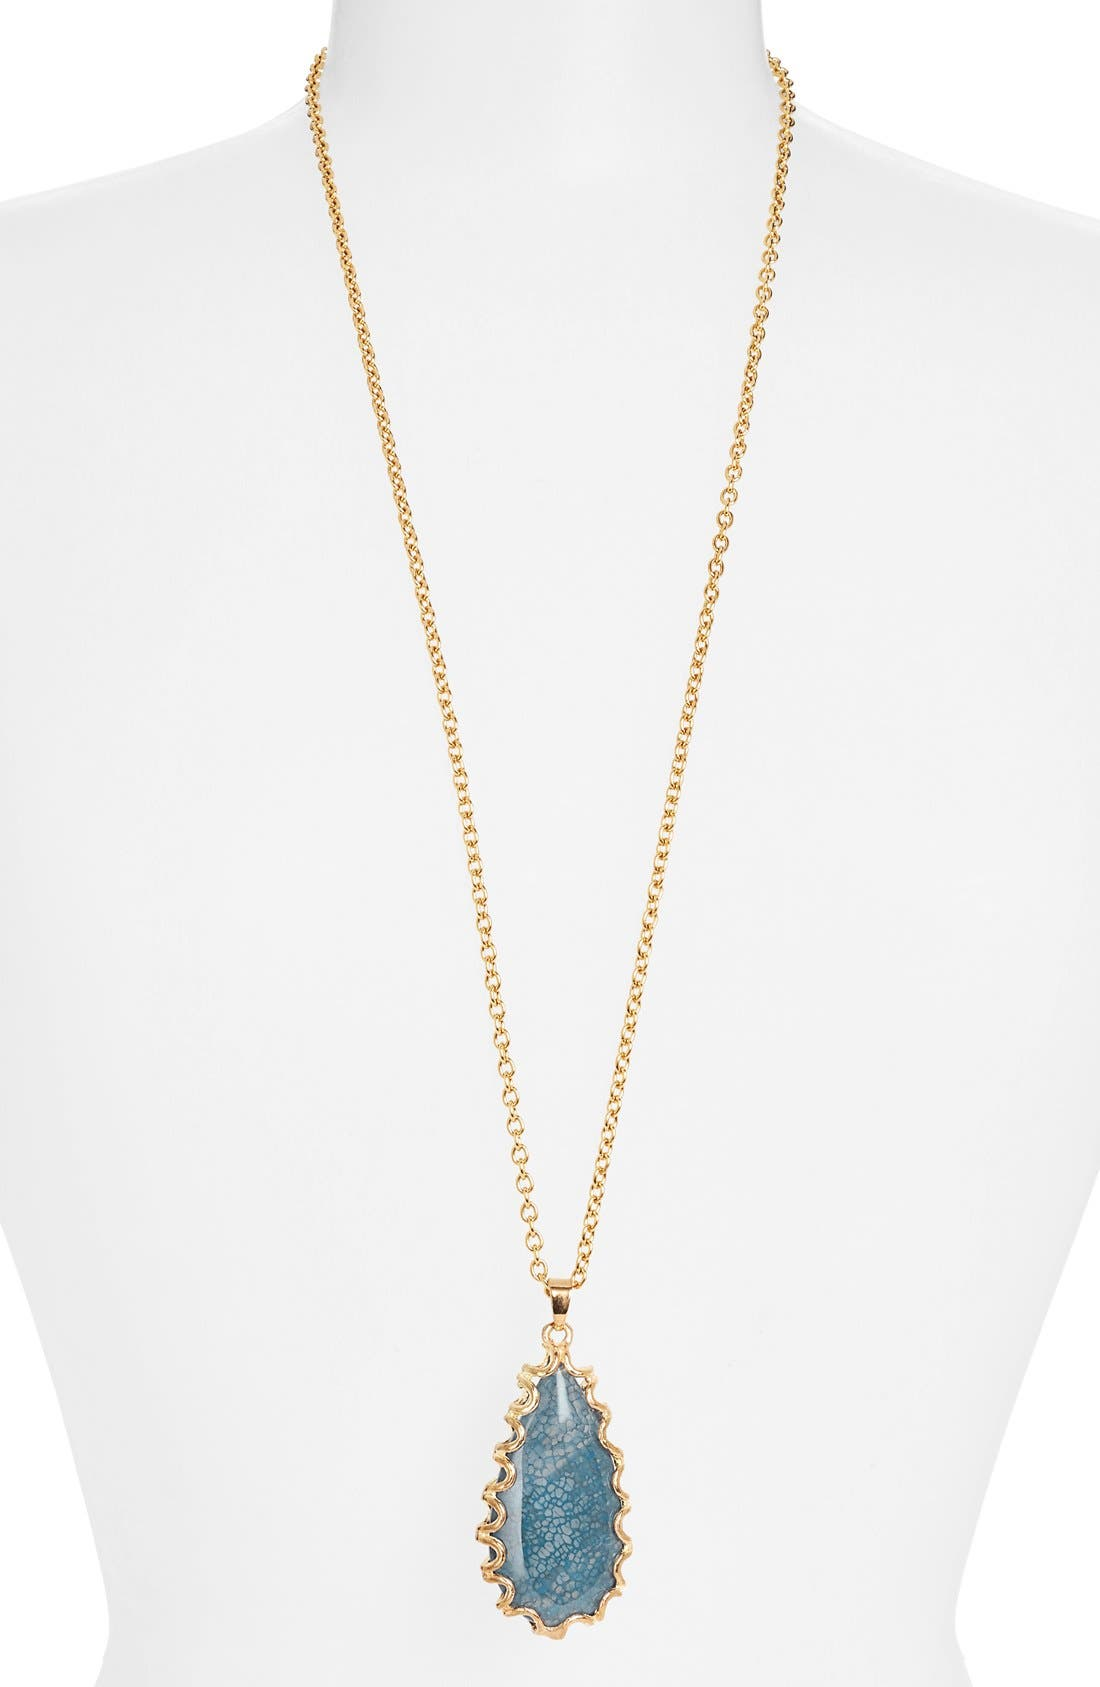 Main Image - Nordstrom 'Sorcerer's Stone' Long Teardrop Pendant Necklace